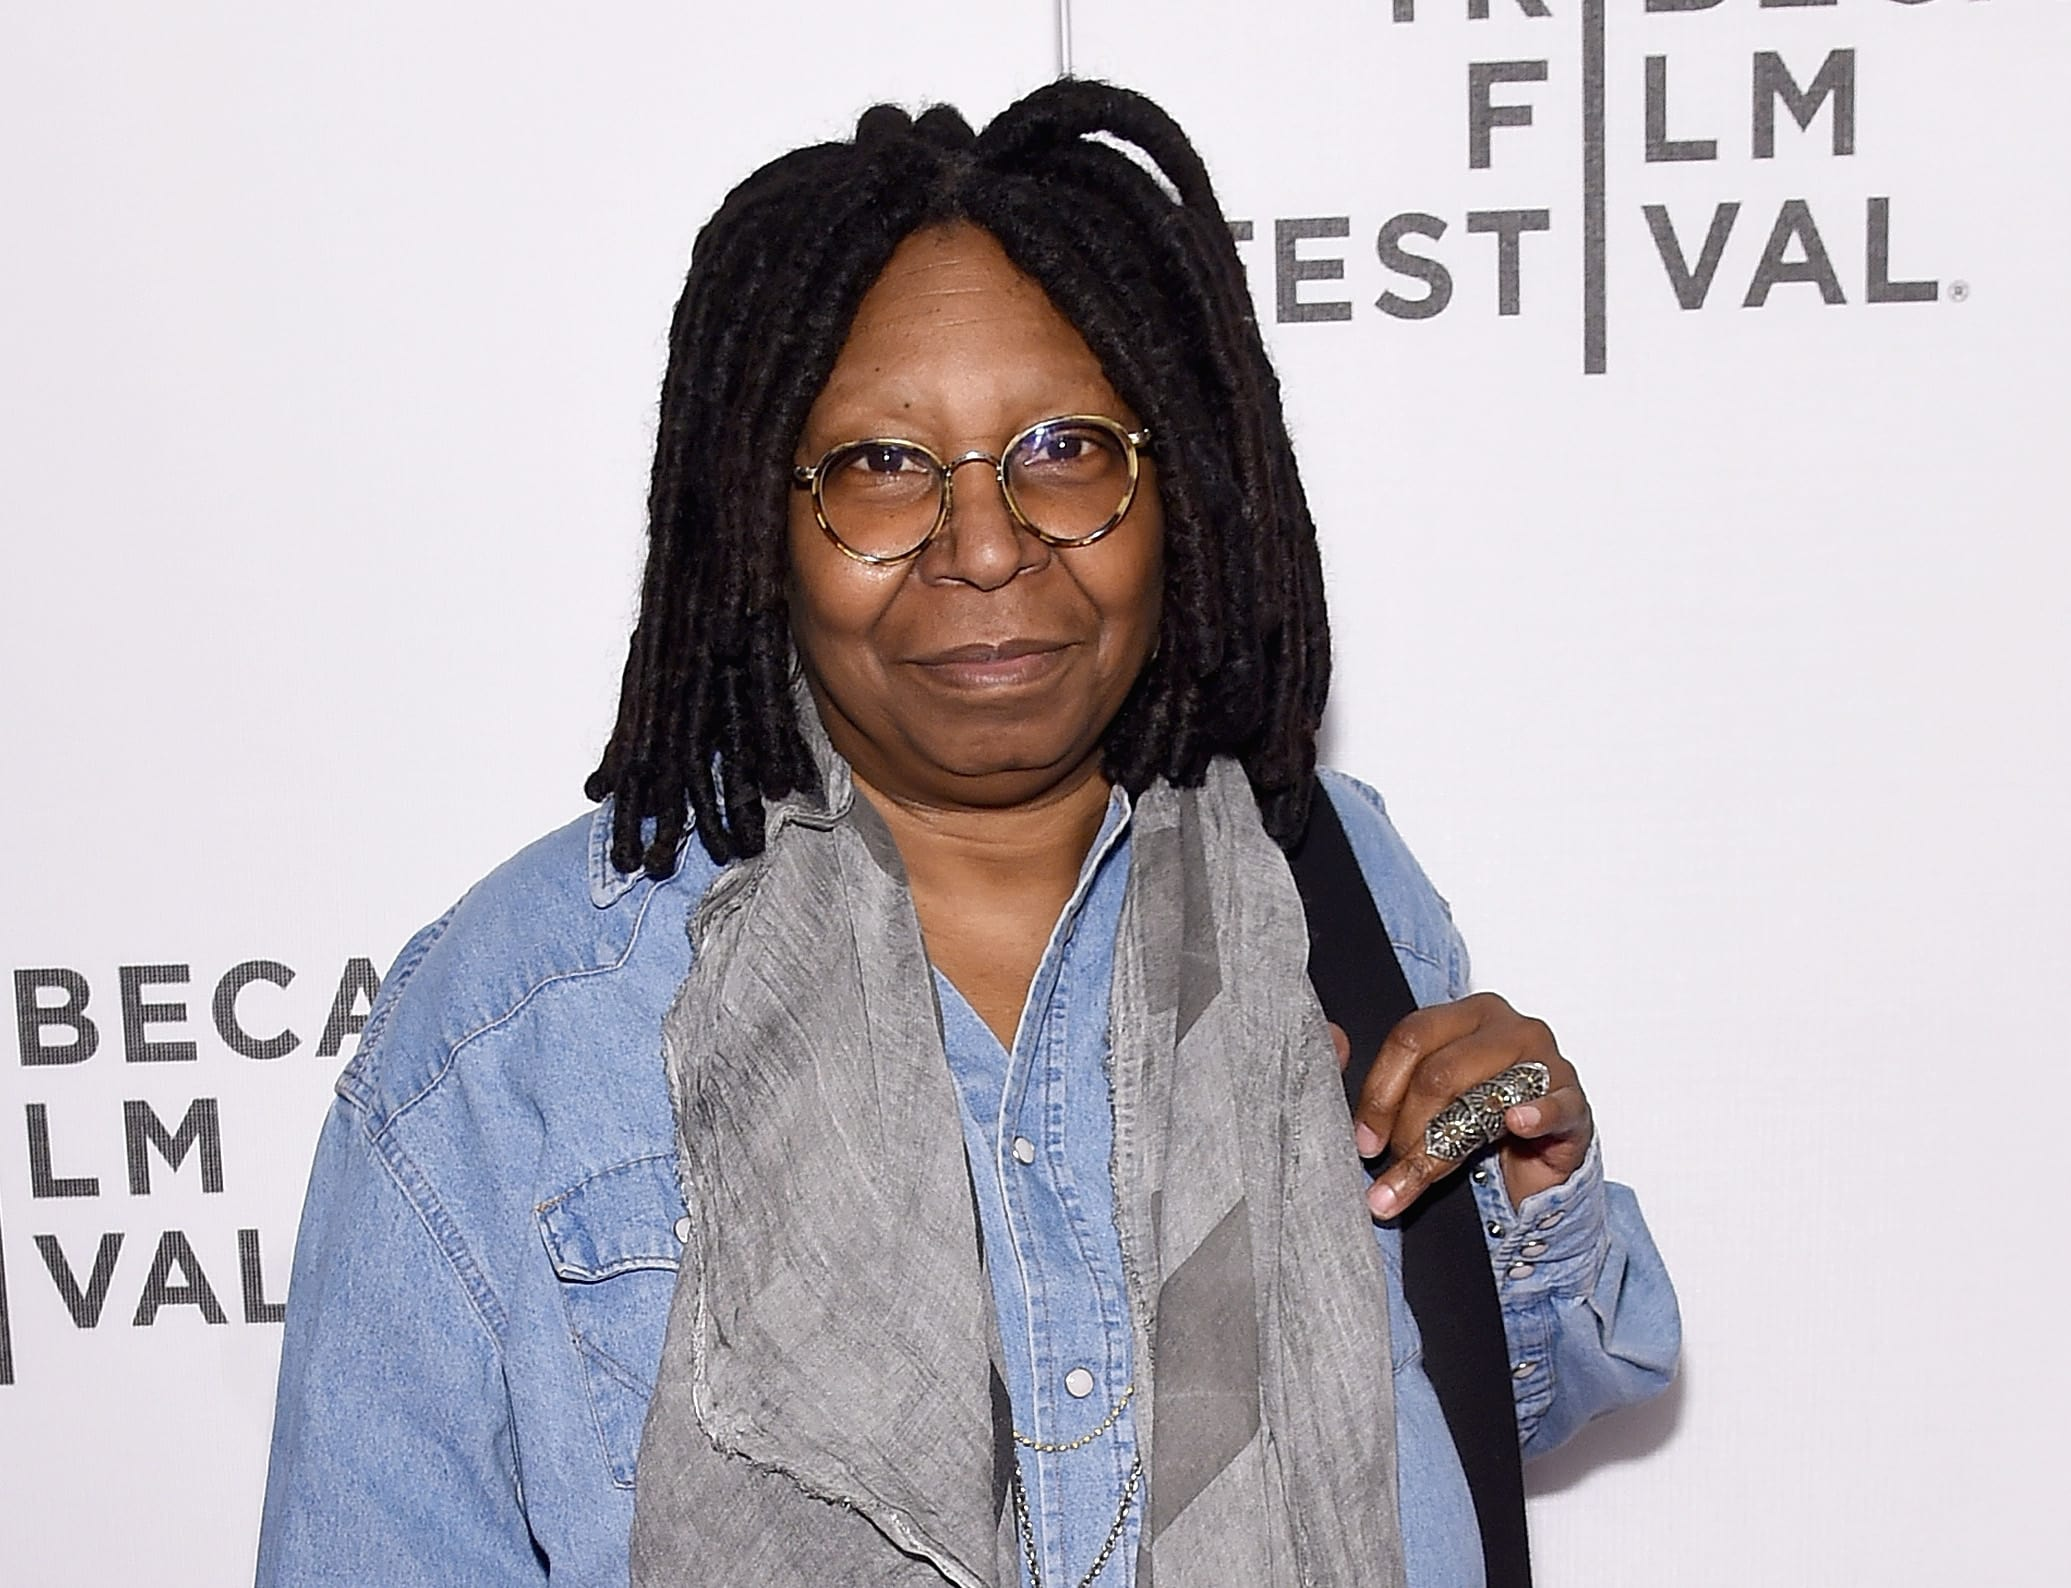 whoopi goldberg signs new deal on the view - the hollywood